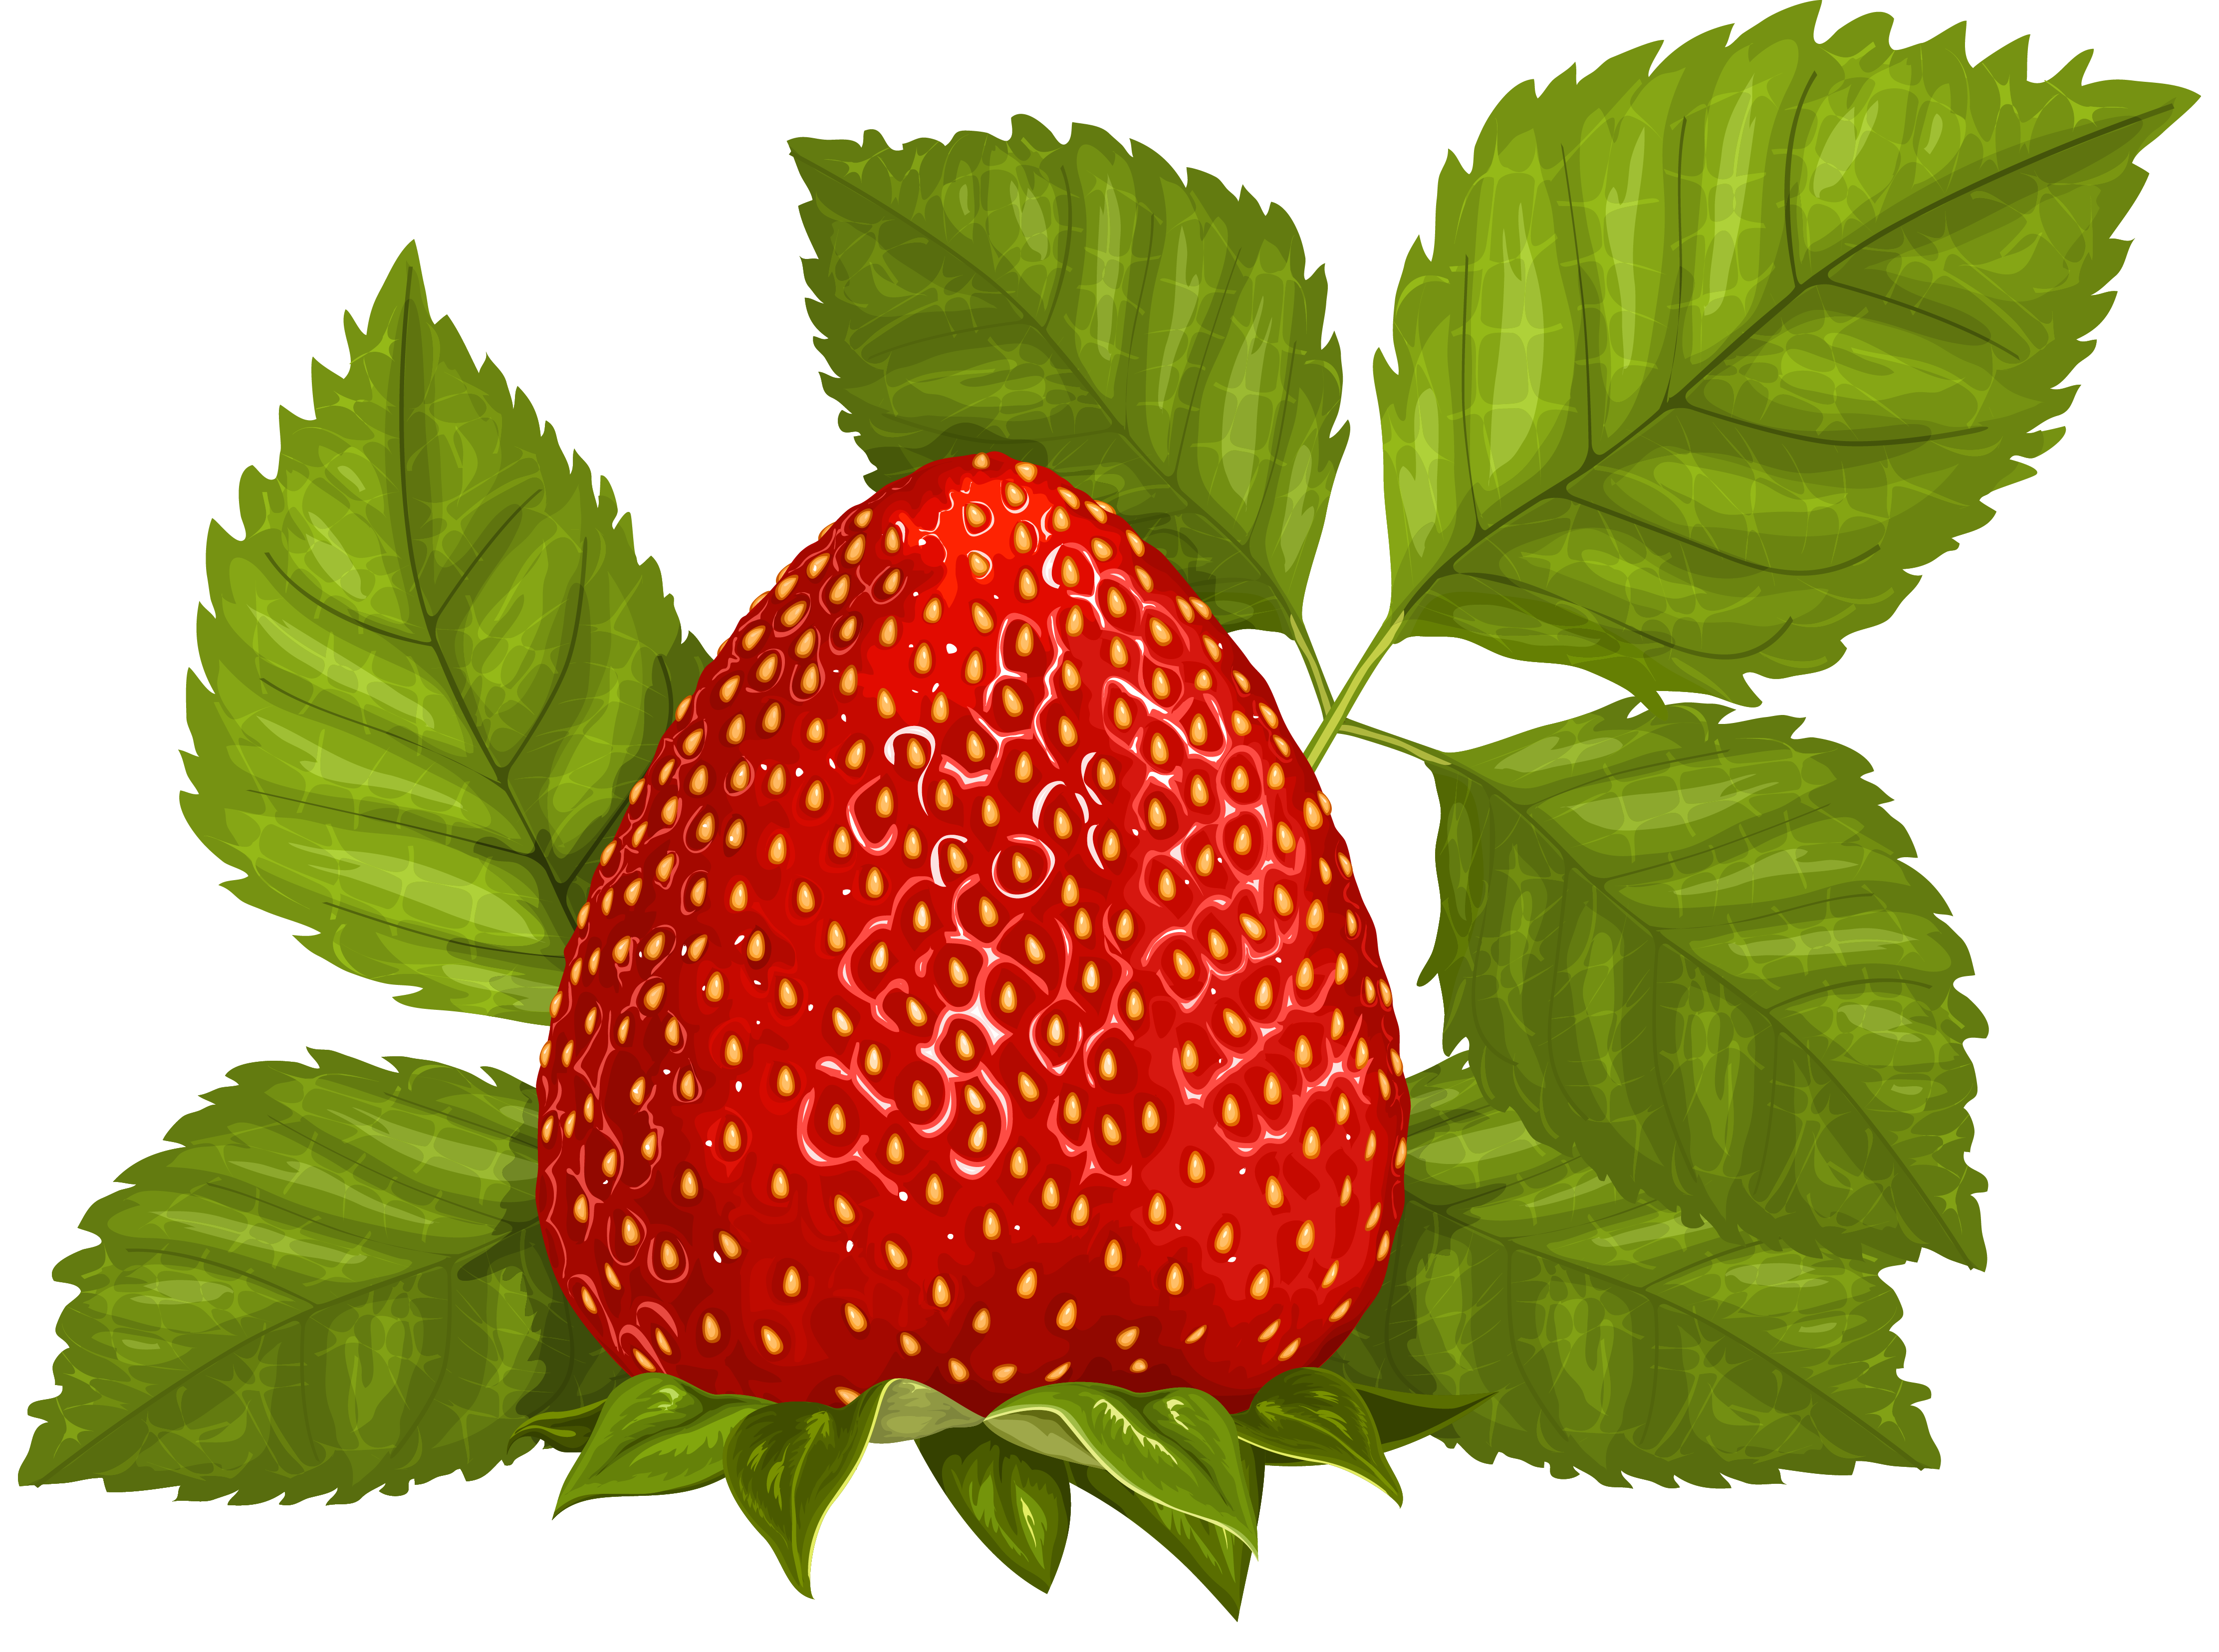 Strawberry flower clipart royalty free download Strawberry with Leaves PNG Clipart Picture | Gallery Yopriceville ... royalty free download